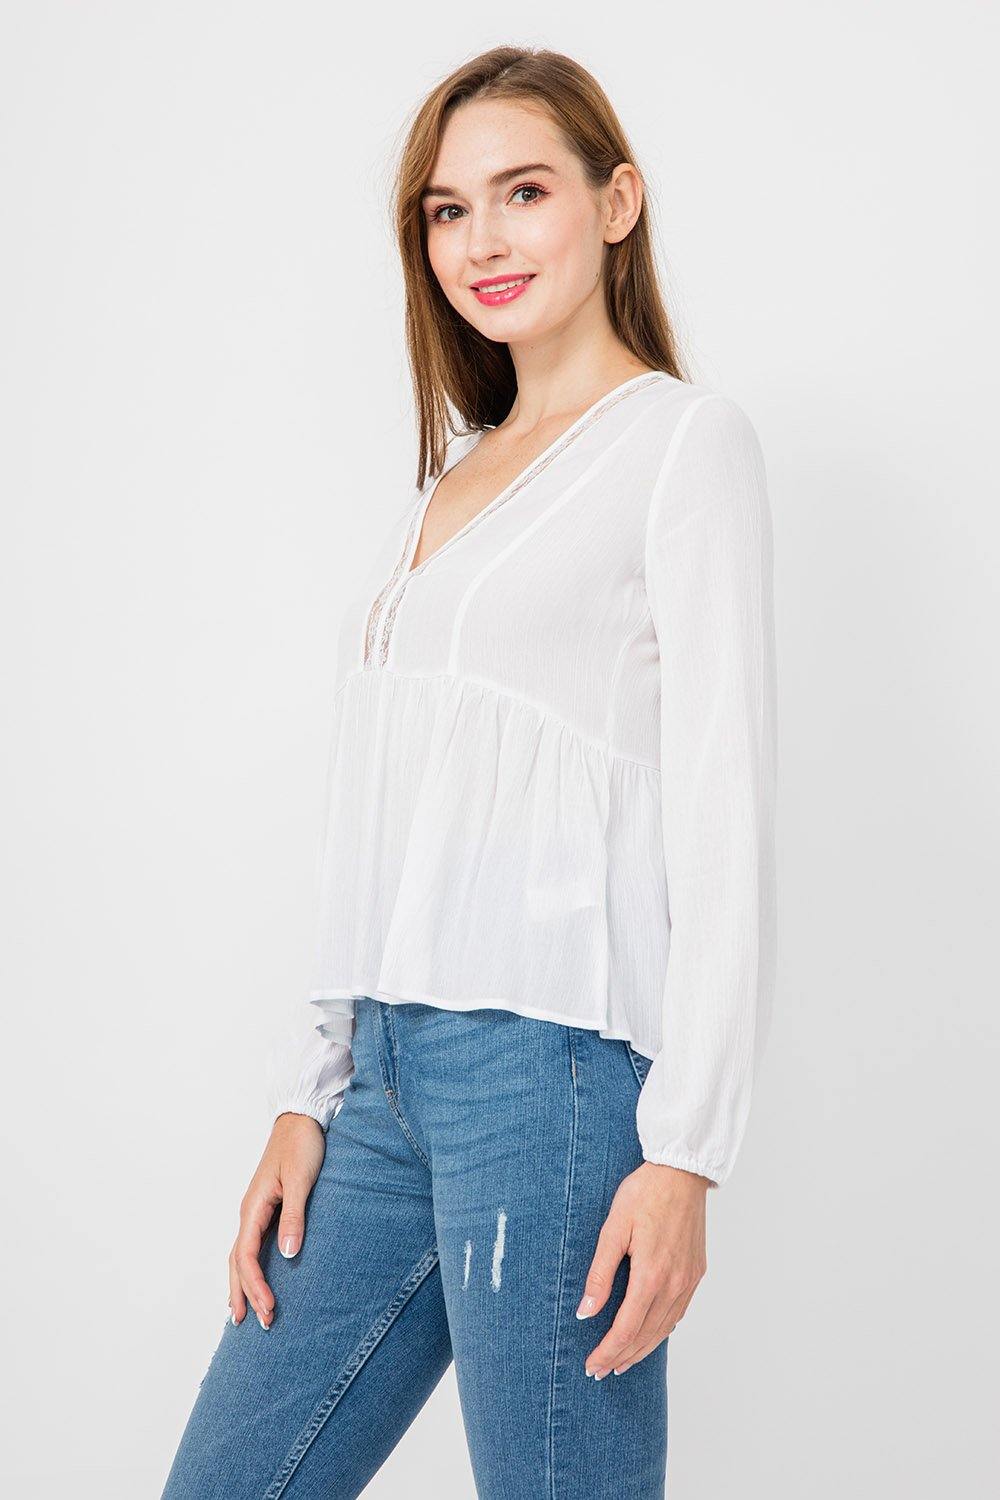 Bluse Lisa - The Fashionboutique - Colloseum